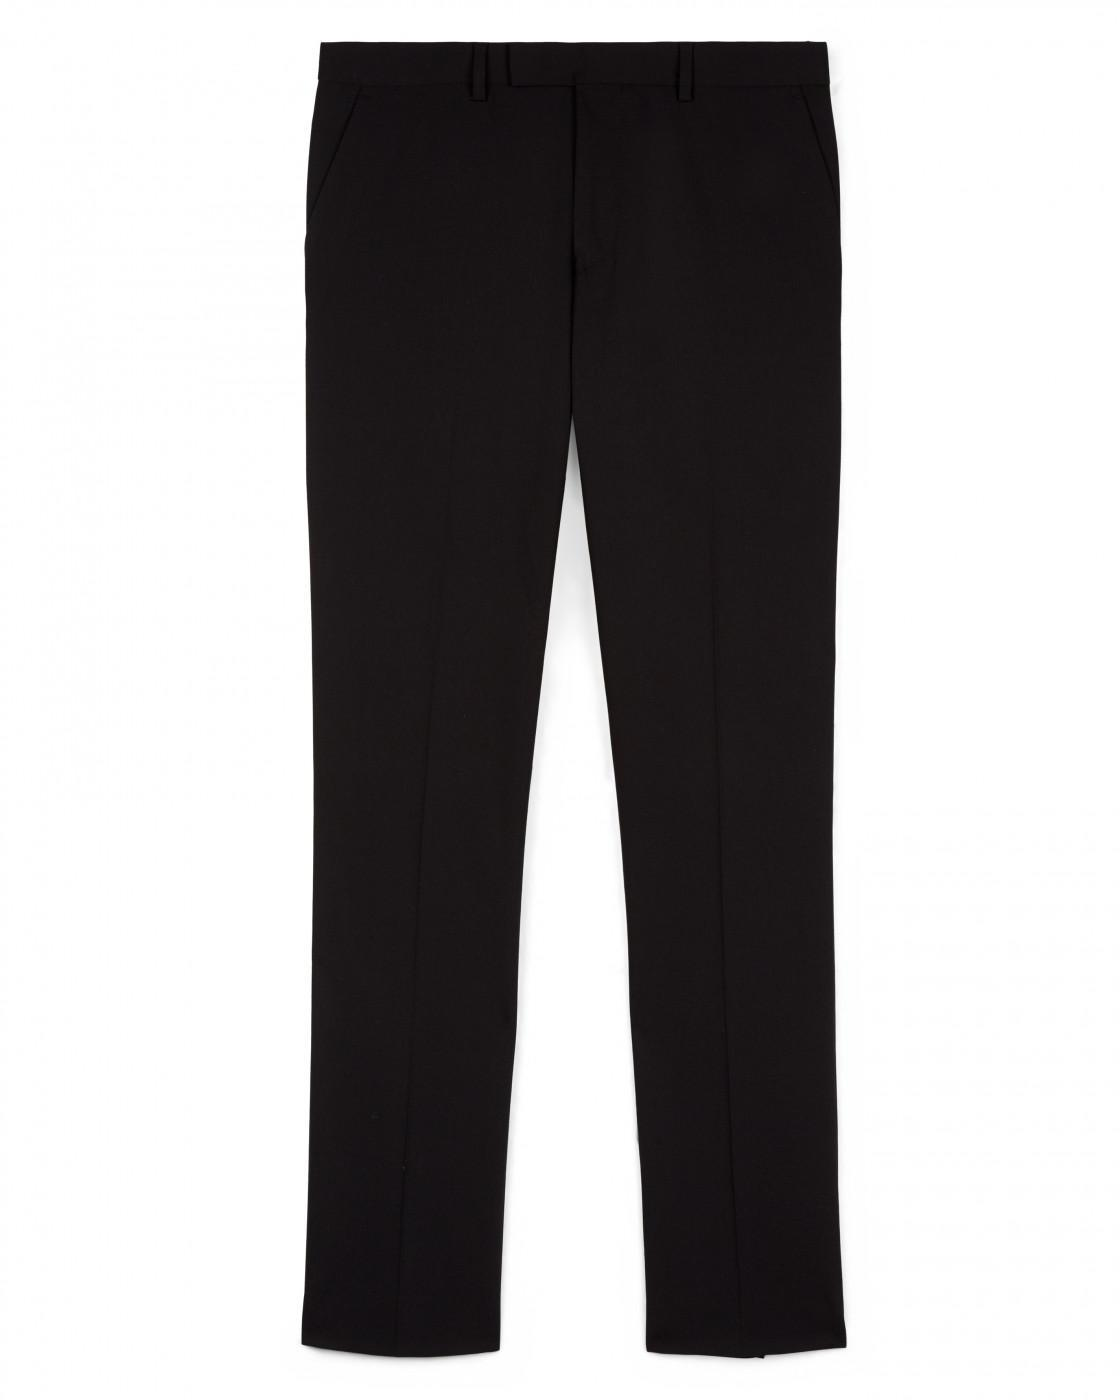 Skinny Black Suit Trouser By Austin Reed Thread Com